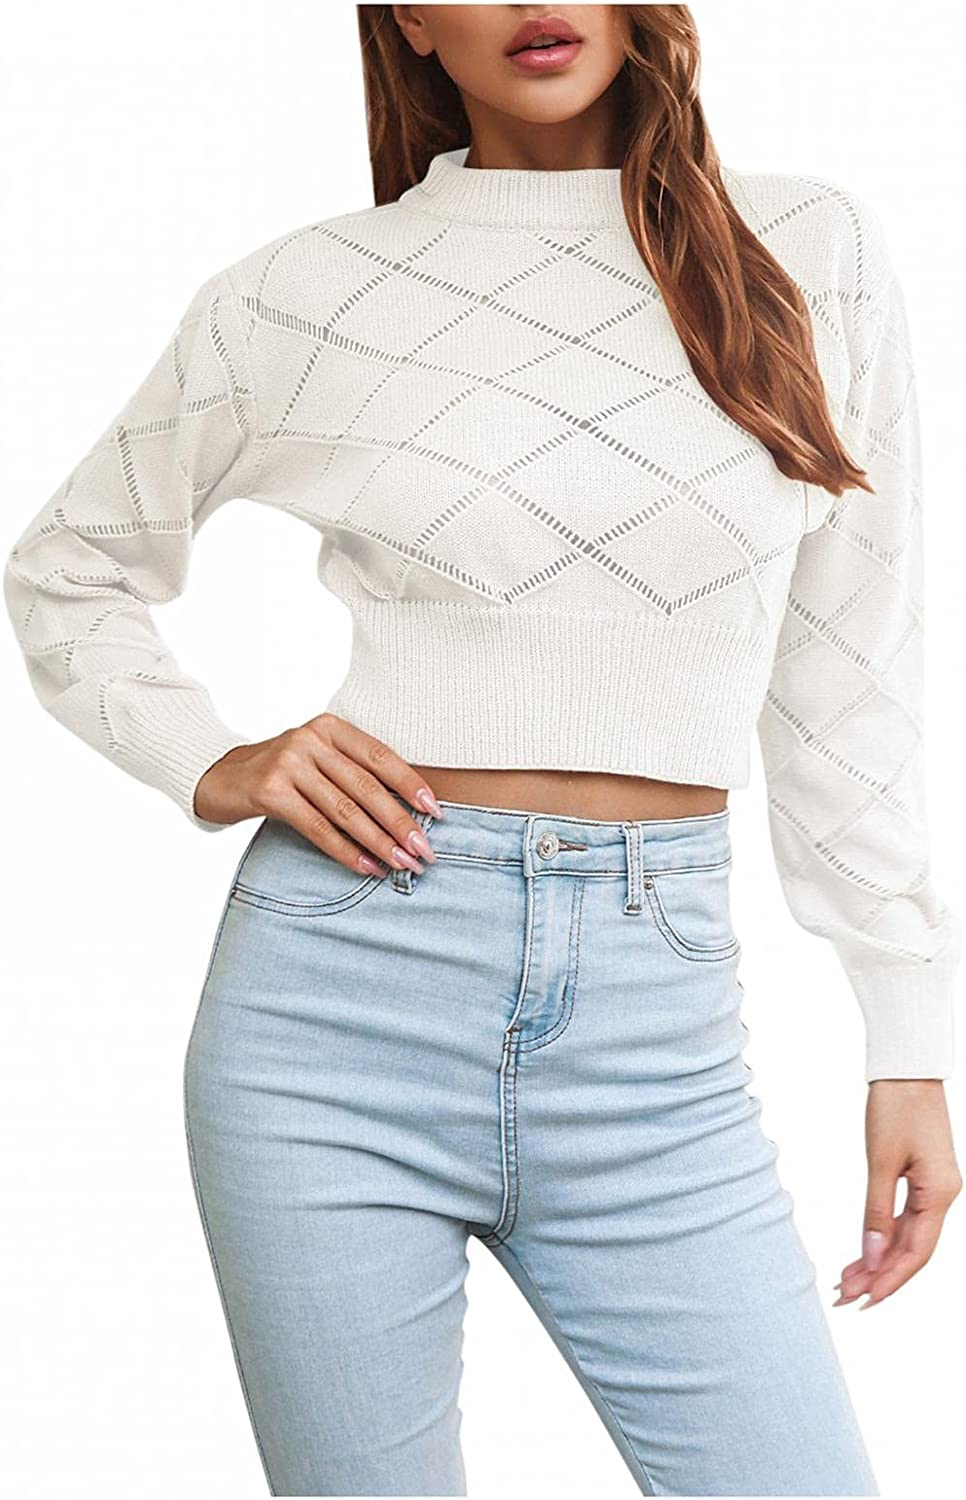 Xinantime Women's Solid Color Crop Sweater Crewneck Knitted Blouse Ladies Long Sleeve Trendy Winter Shirt Pullover Tops